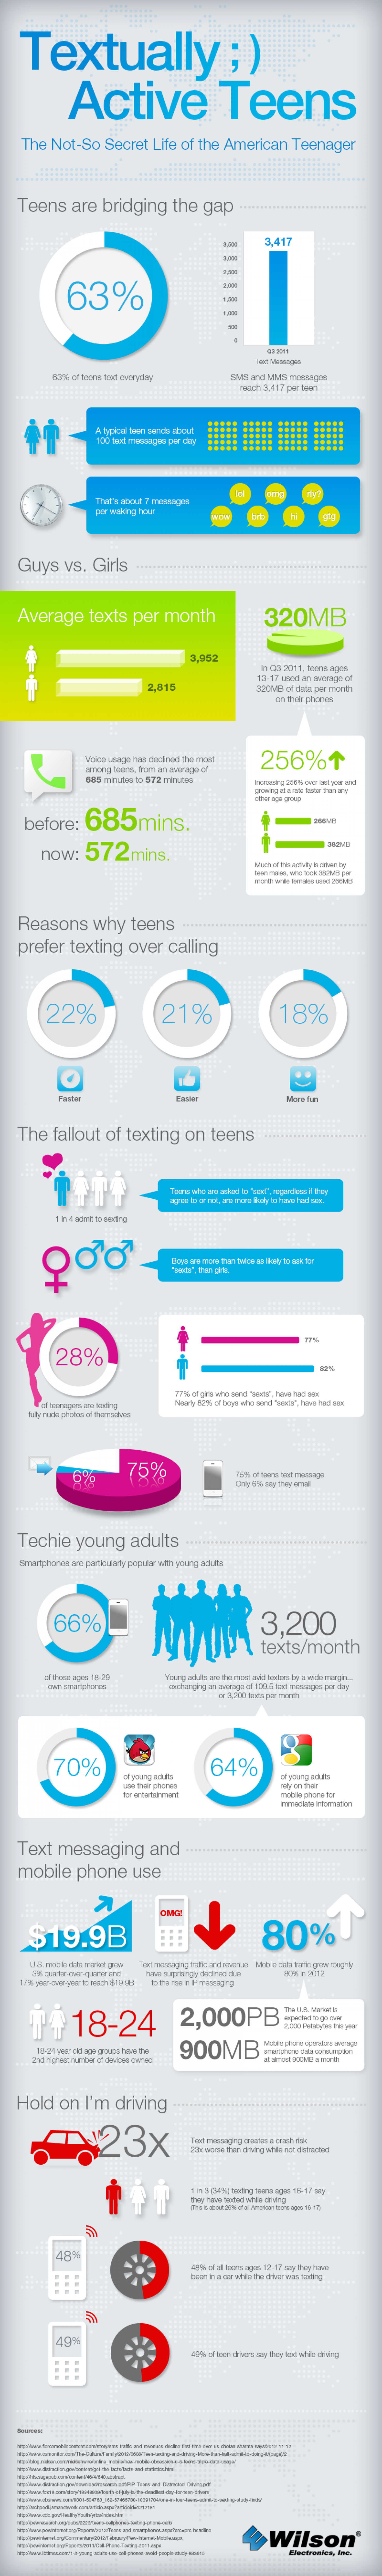 Textually Active Teens Infographic